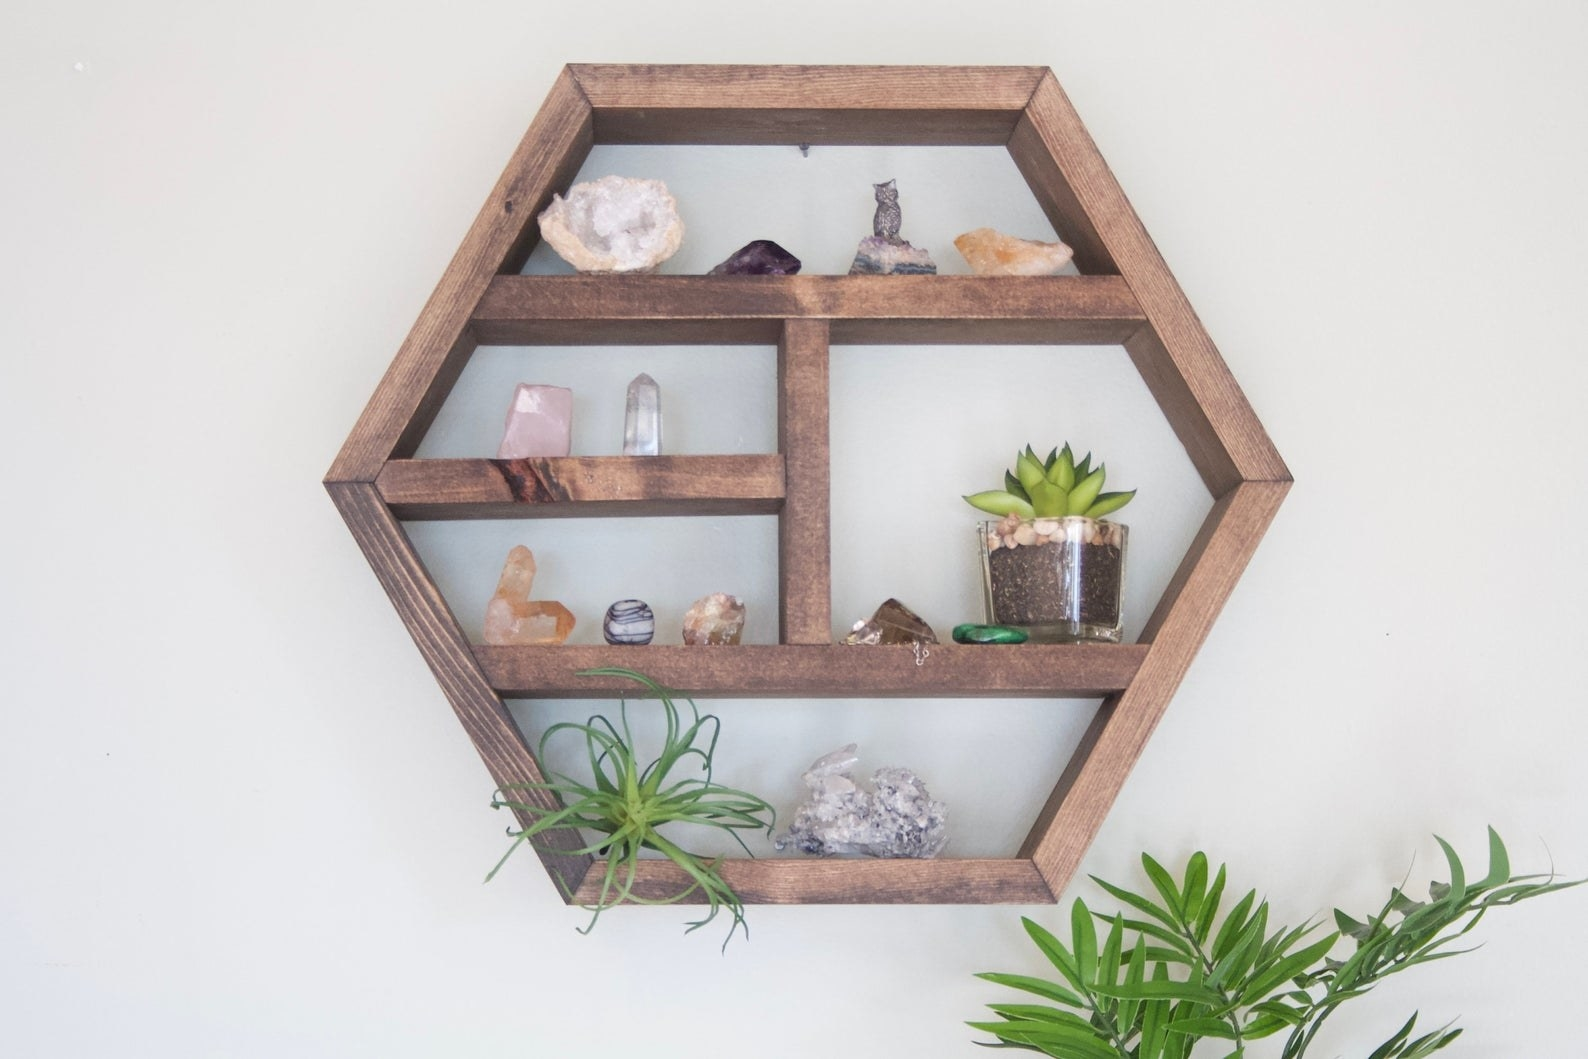 the hexagon shelf holding plants and crystals